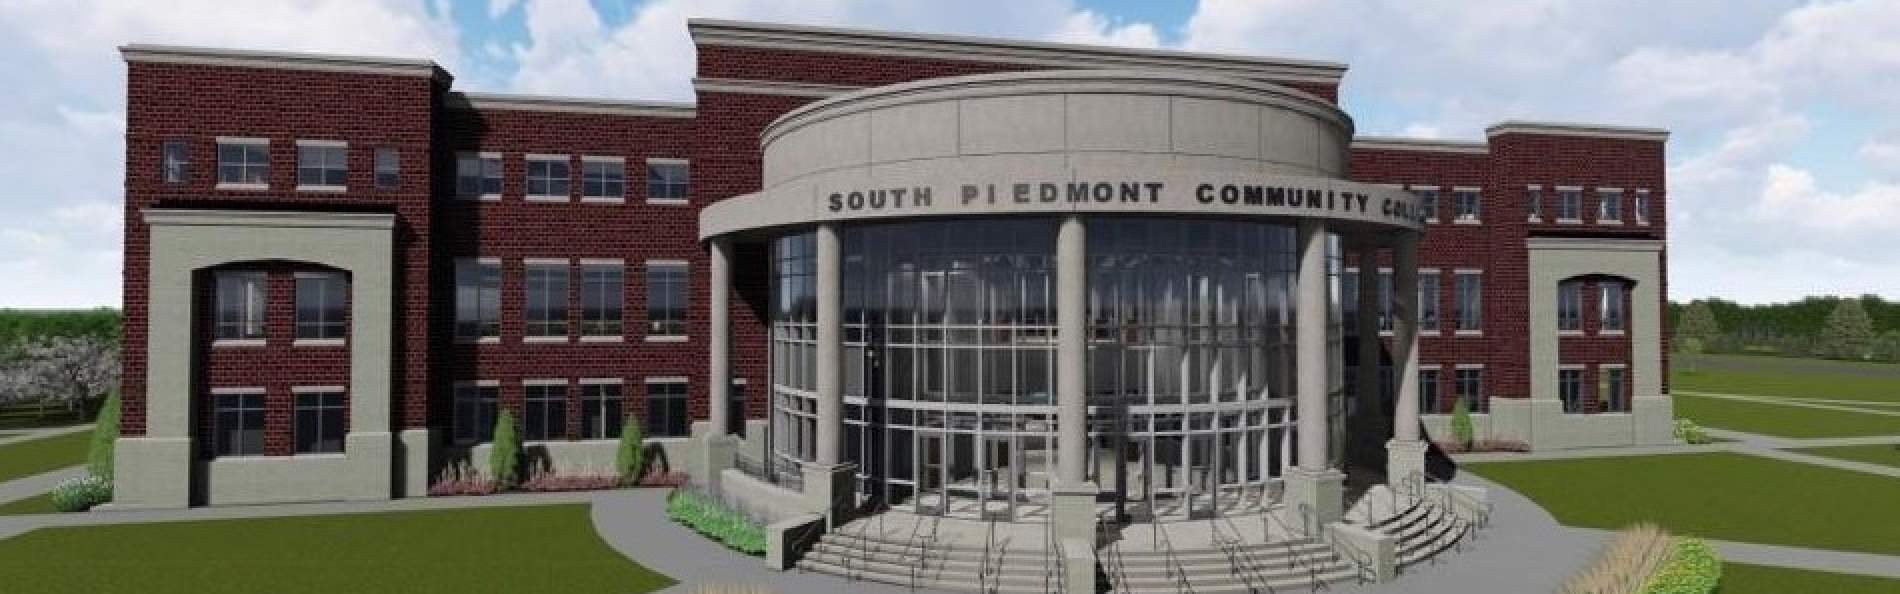 South Piedmont Community College rendering